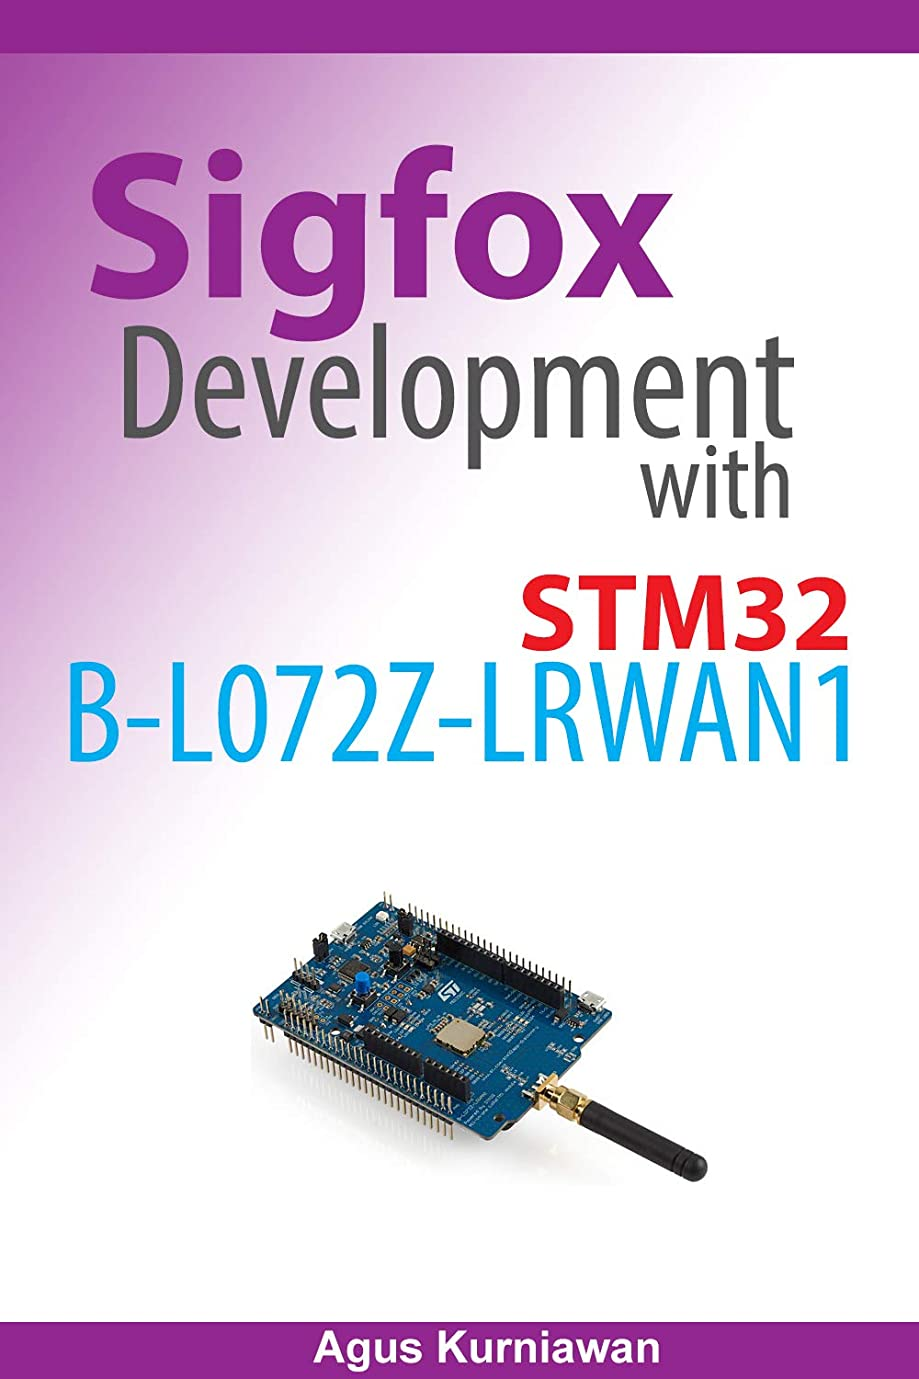 病弱保守可能騒々しいSigfox Development with STM32 B-L072Z-LRWAN1 (English Edition)